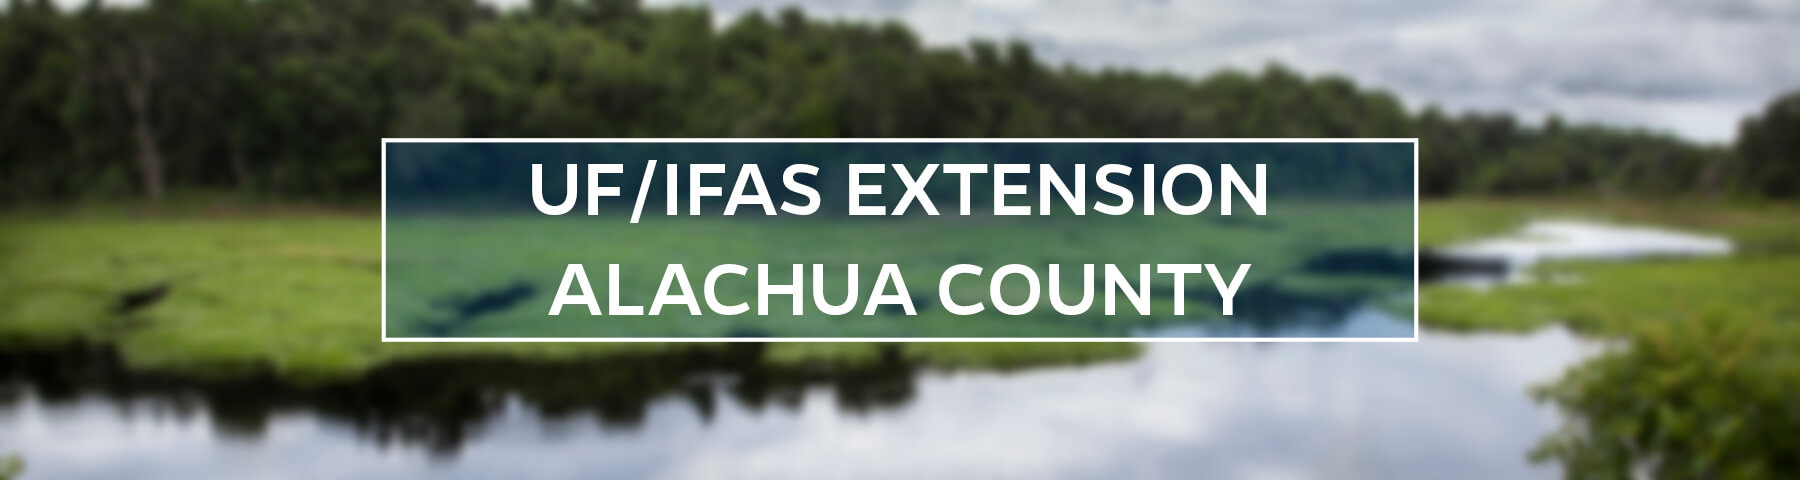 UF/IFAS Extension Alachua County